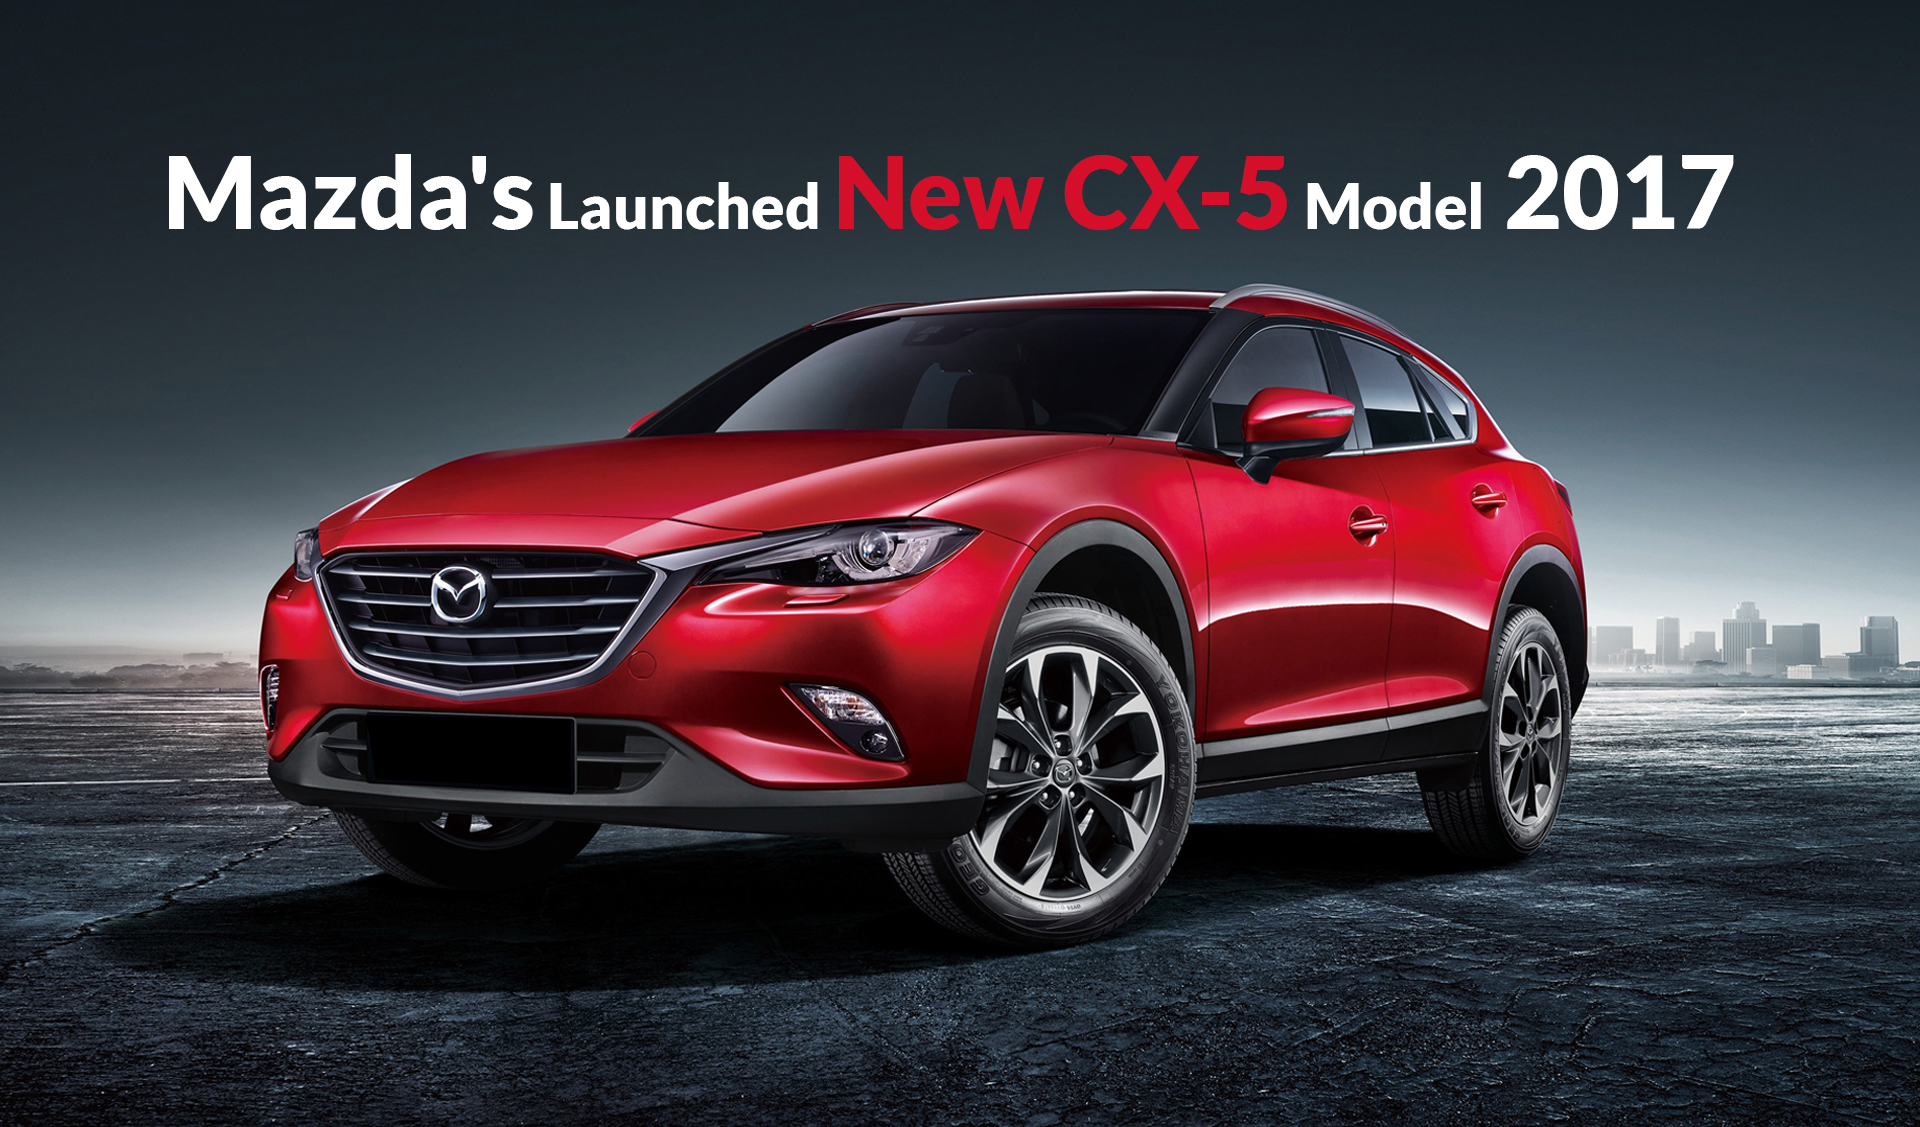 Mazda's Launched New CX-5 Model 2017